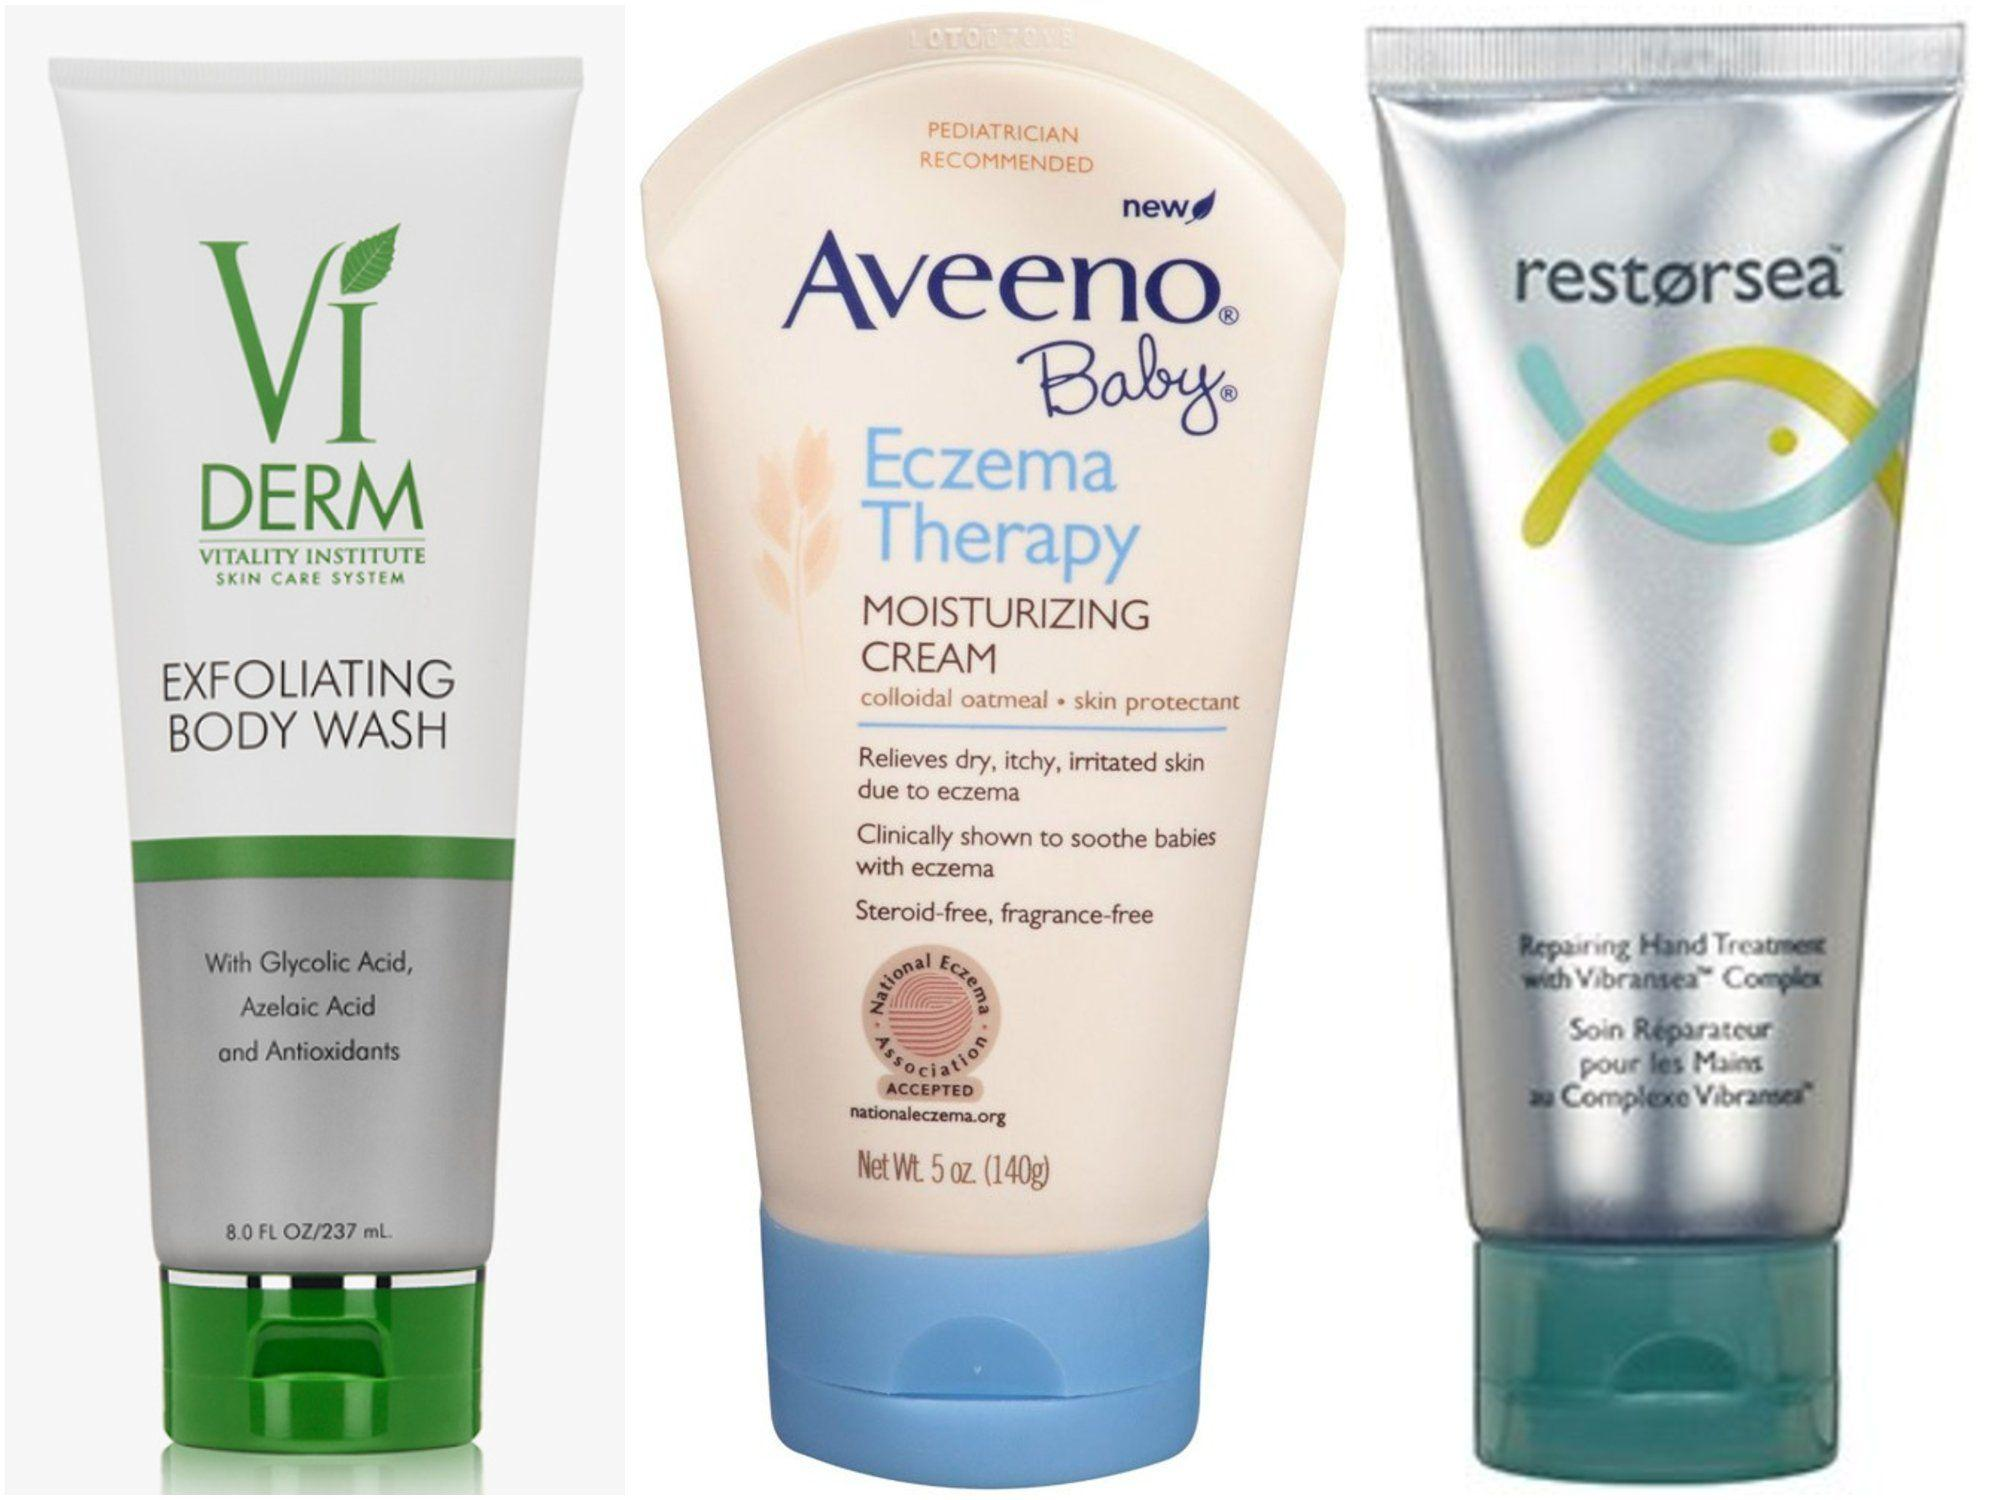 Consumer research facial moisturizers